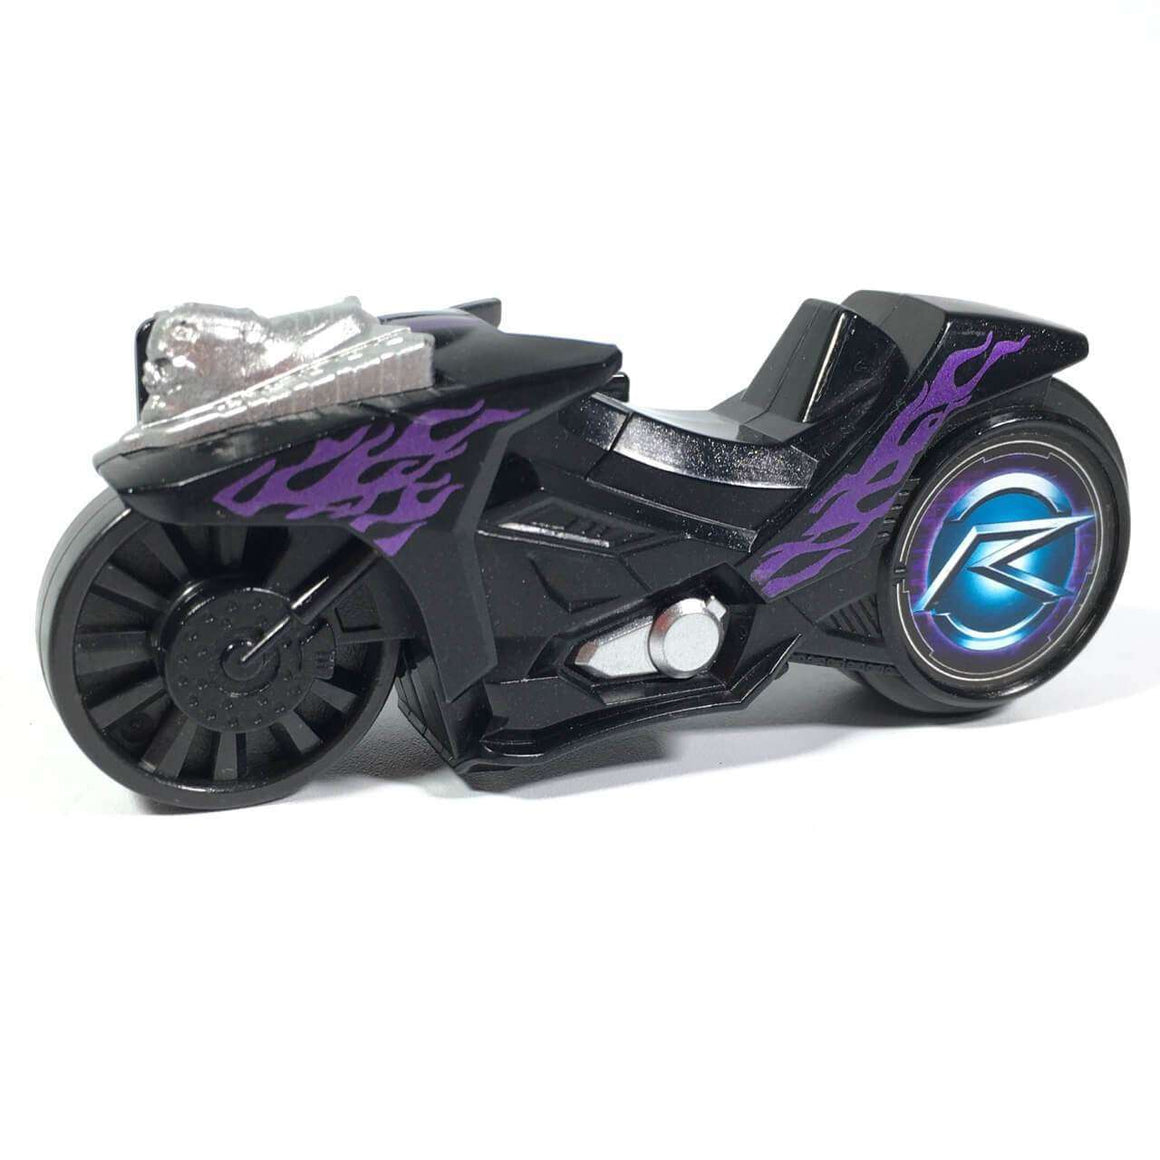 CSTOYS INTERNATIONAL:[LOOSE] Kamen Rider Drive: DX Signal Chaser